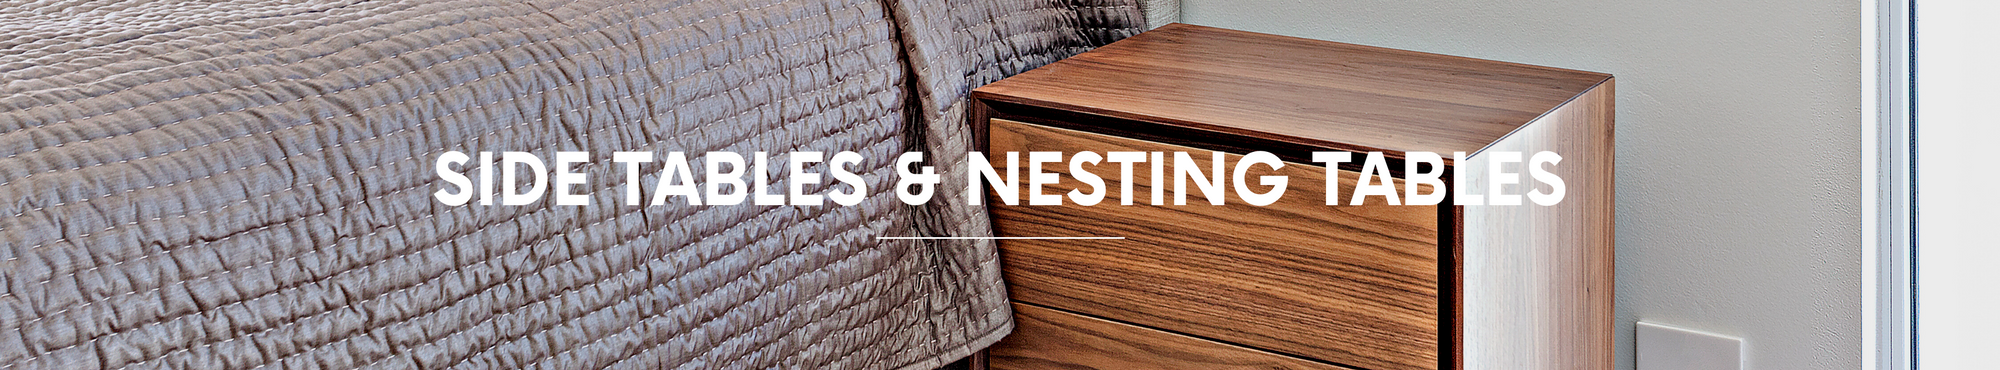 Side Tables & Nesting Tables